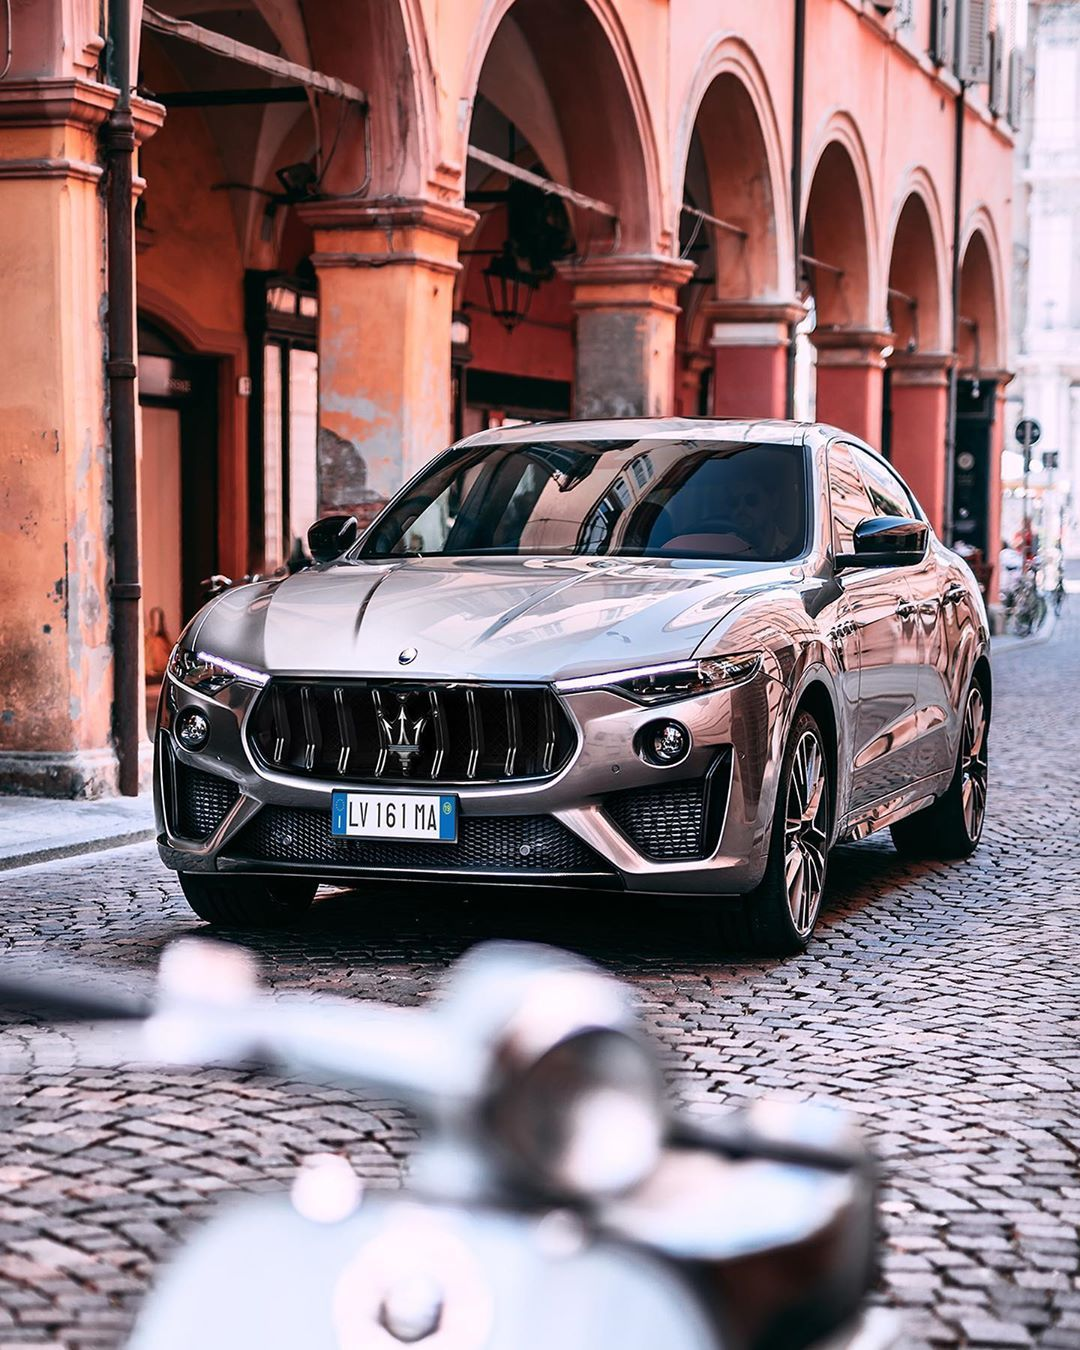 "Maserati on Instagram: ""Capturing the Italian atmosphere in one frame.  #MaseratiLevanteTrofeo #Maserati"""